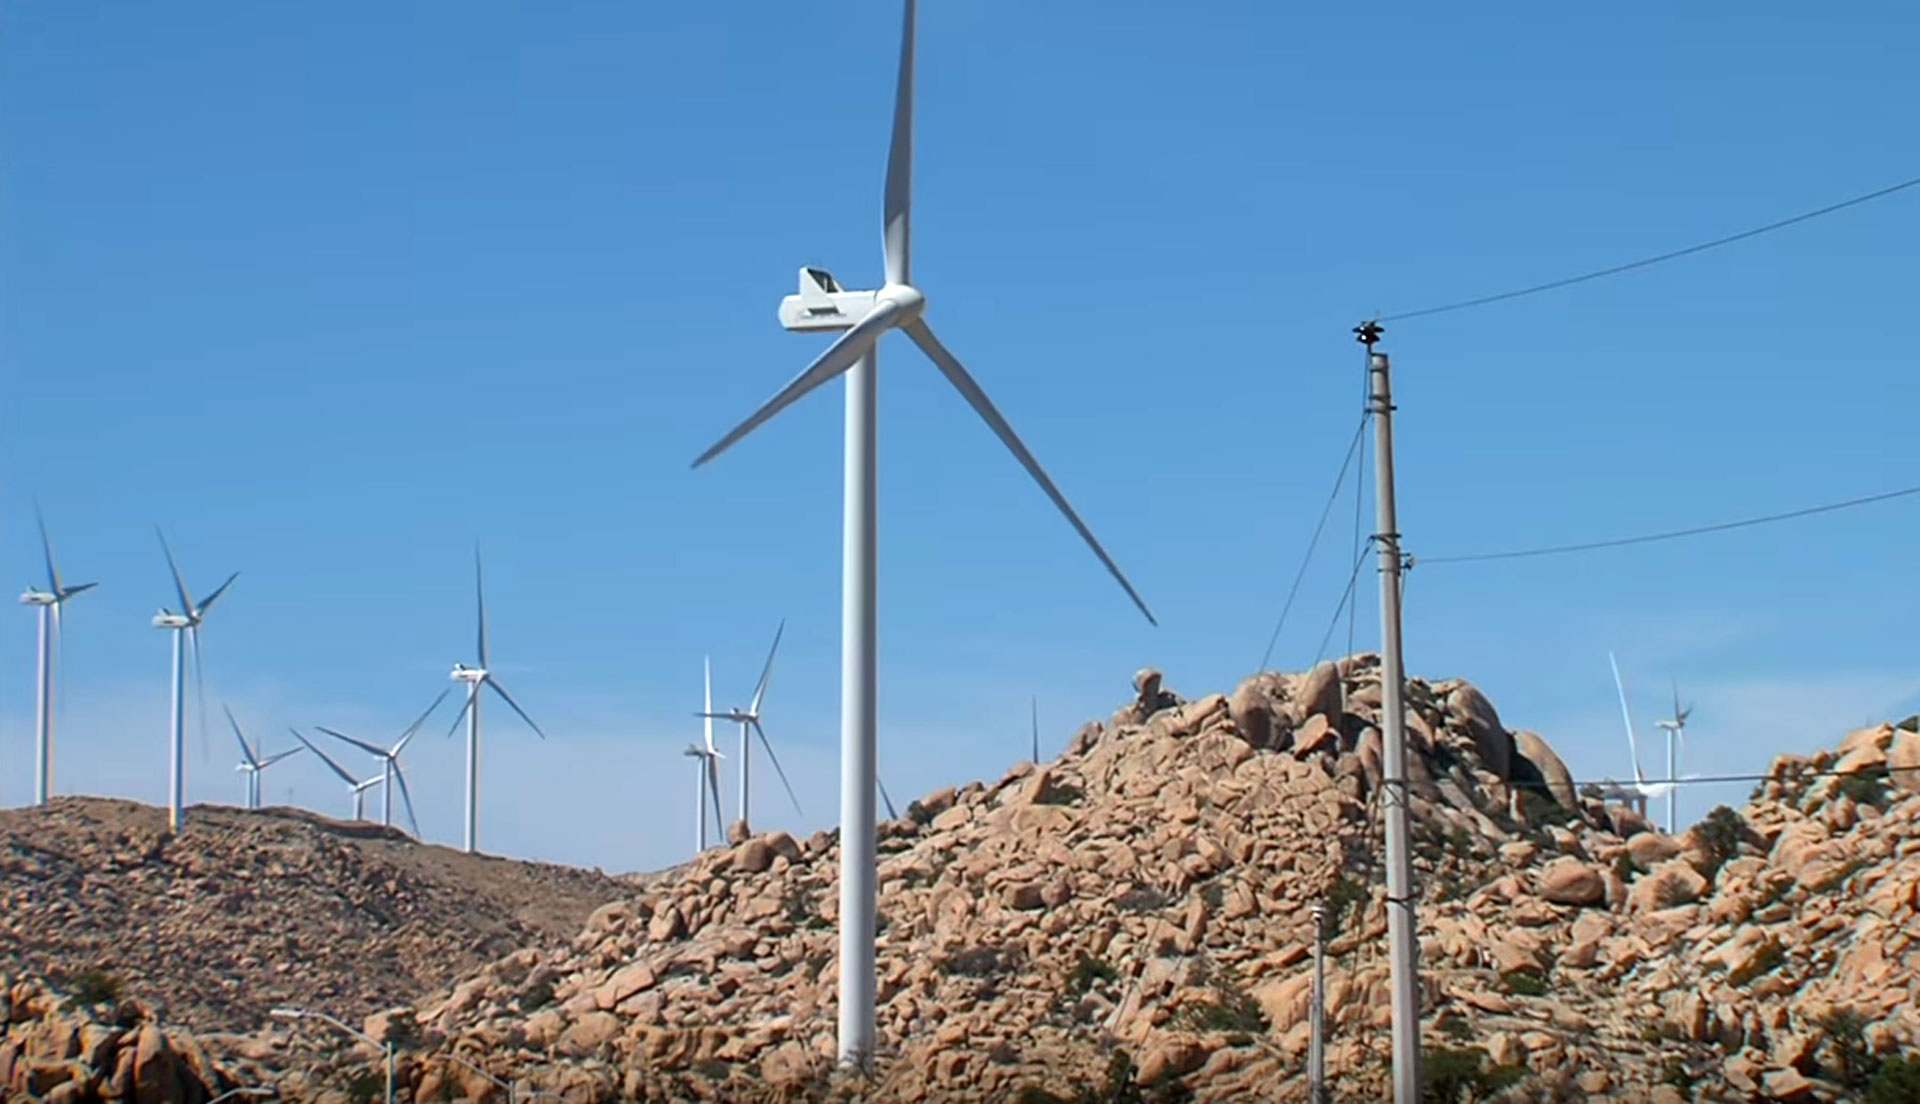 Energía Sierra Juárez is the first cross-border wind farm project between the U.S. and Mexico. Plans to extend capacity by 700 percent have been met with criticism of the potential environmental impact.